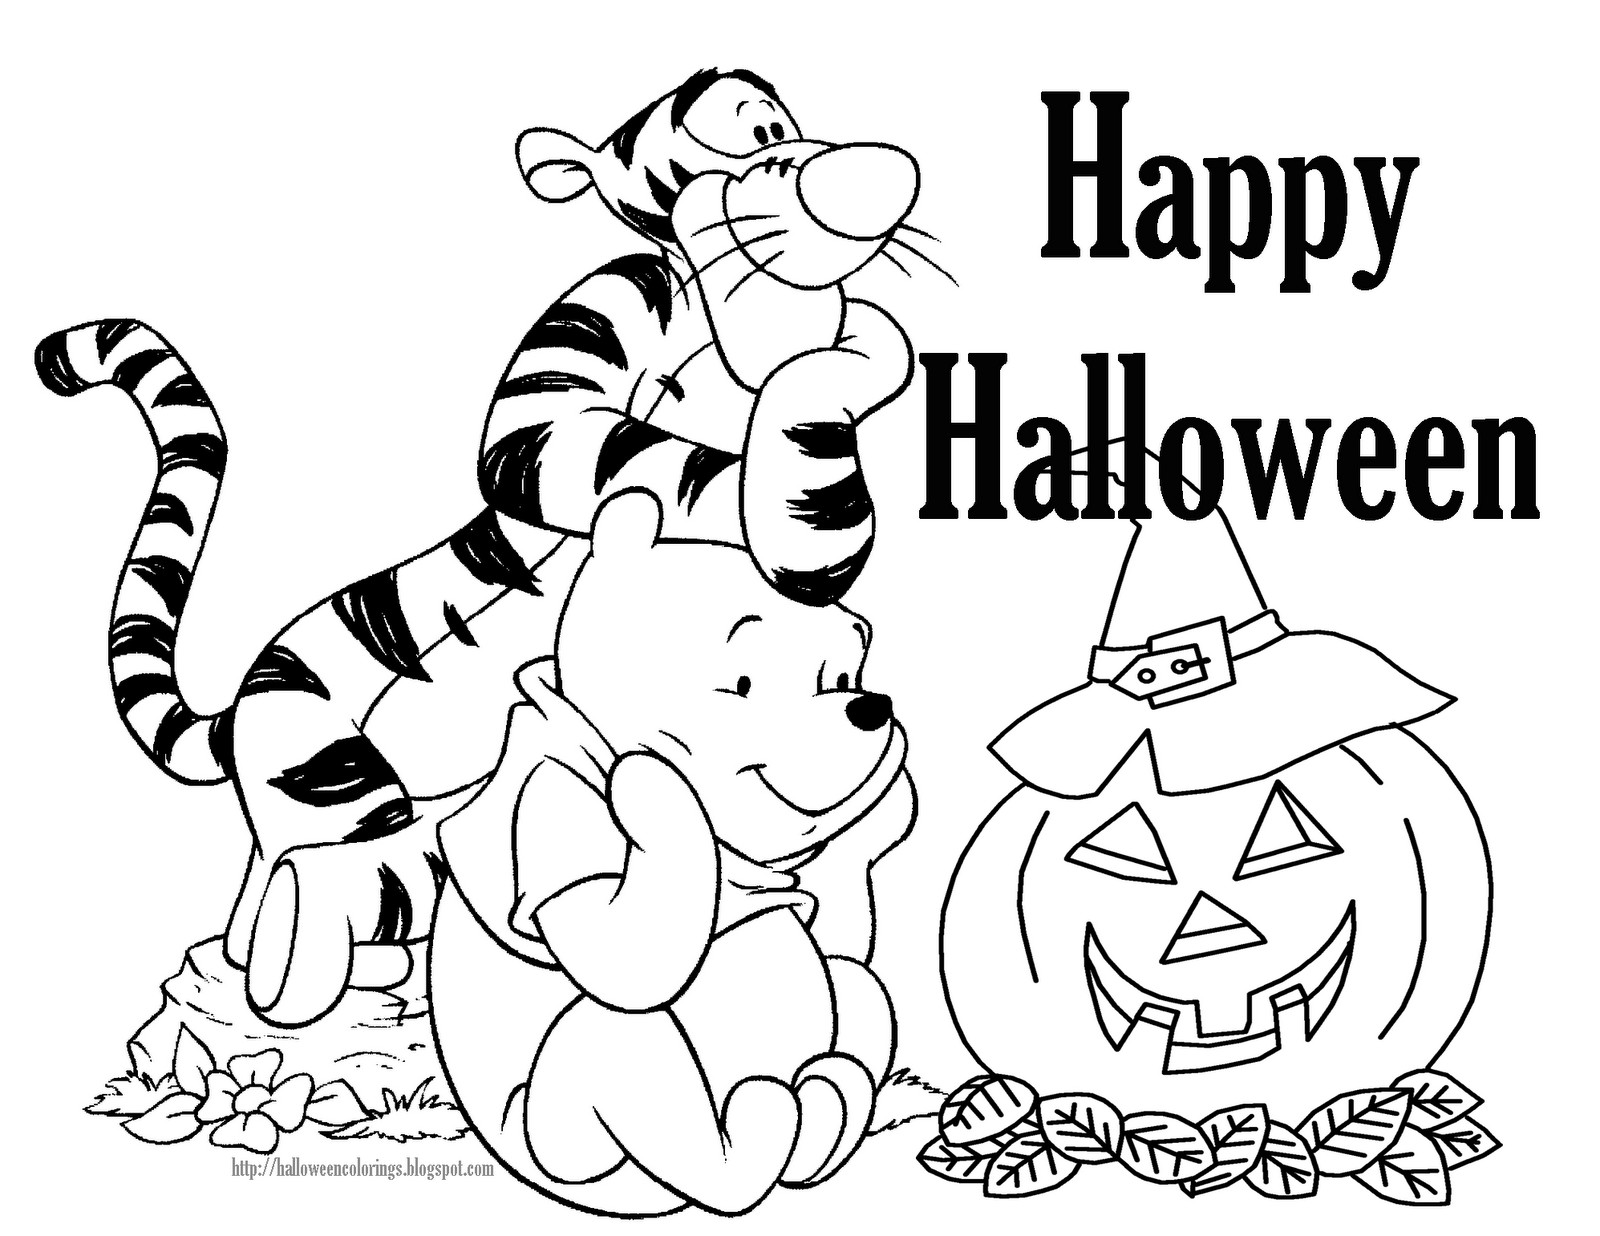 Free Coloring Pages For Halloween Printable  Halloween Coloring Pages – Free Printable Minnesota Miranda